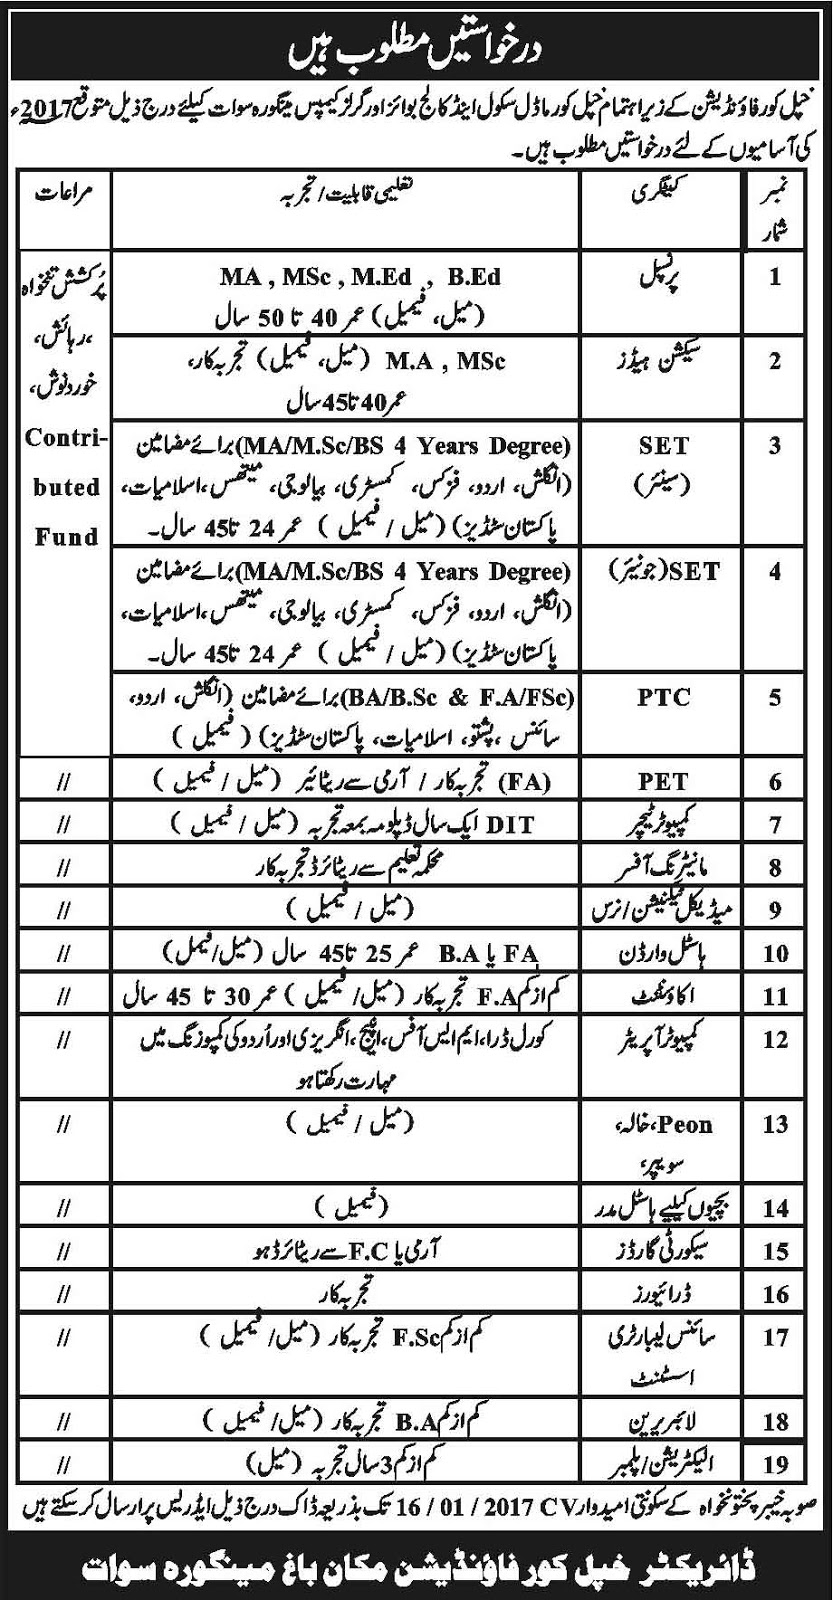 Sawat Khpal Kor Foundation Swat Jobs